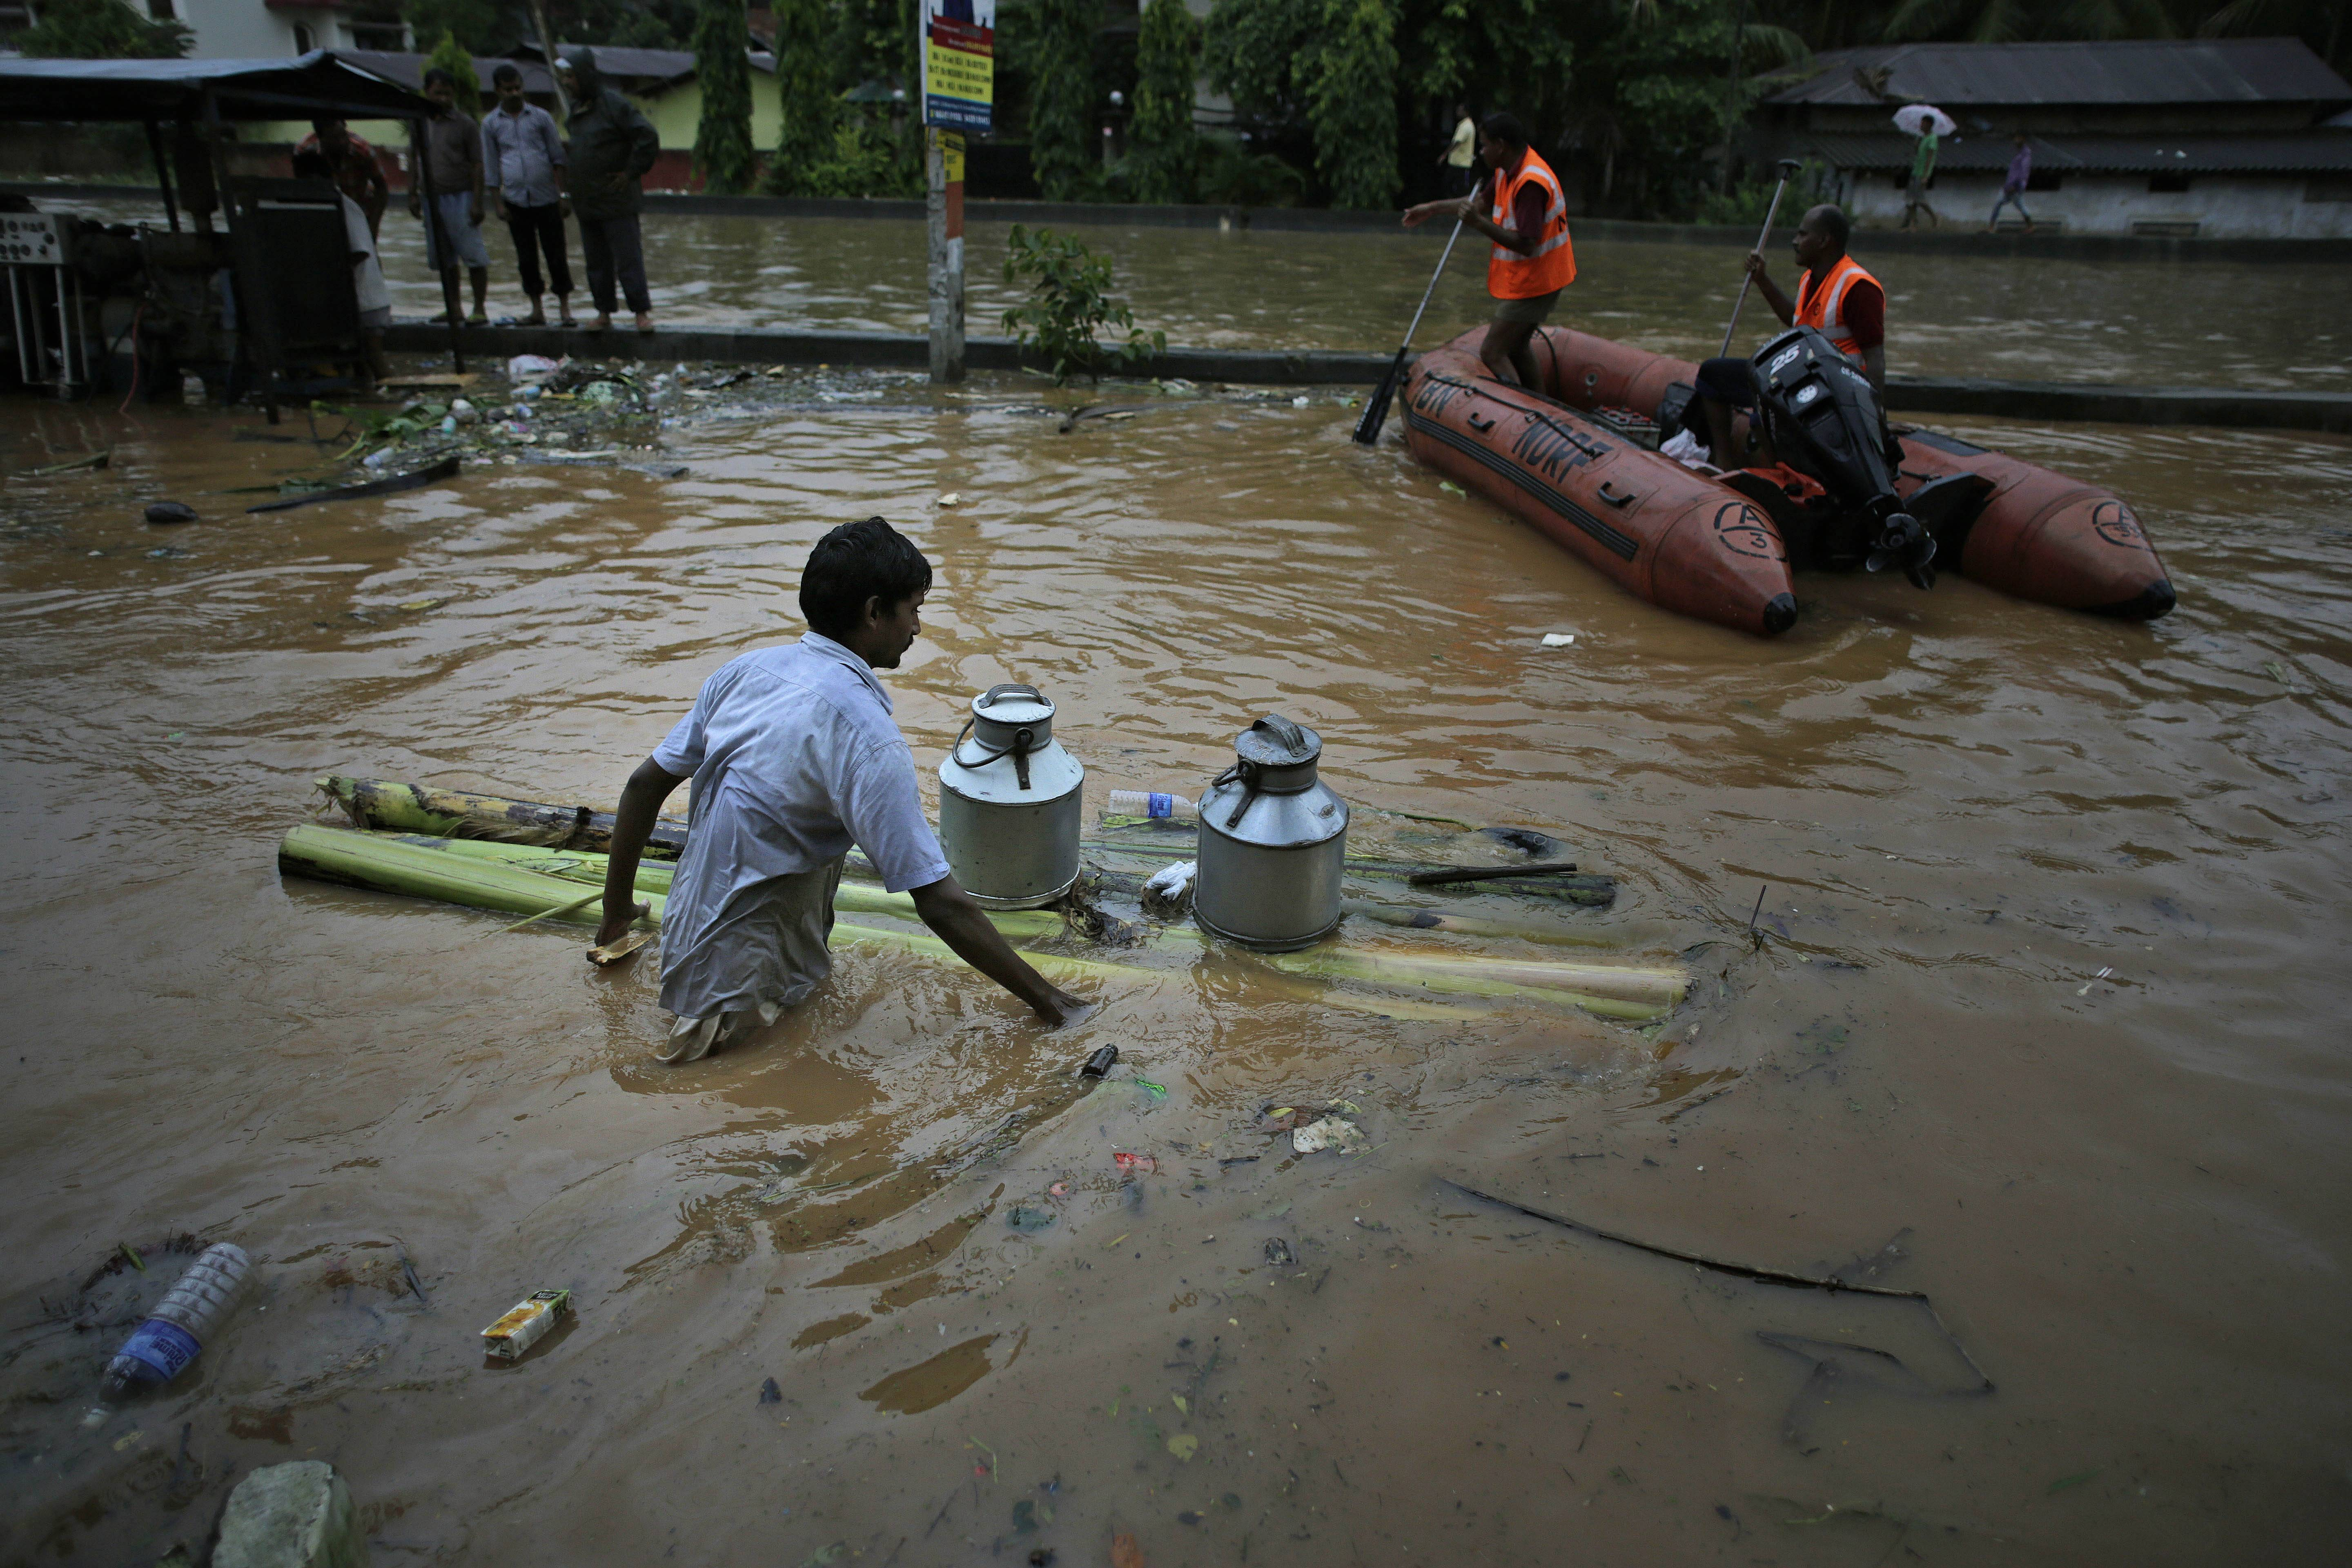 A flood affected man carries milk containers on a banana raft as members of India's National Disaster Response Force ride an inflatable boat to ferry flood to affected people in Gauhati, India, Friday, June 27. Several people were killed due to electrocution and landslides triggered by incessant rains in India's northeastern state of Assam, according to local reports.